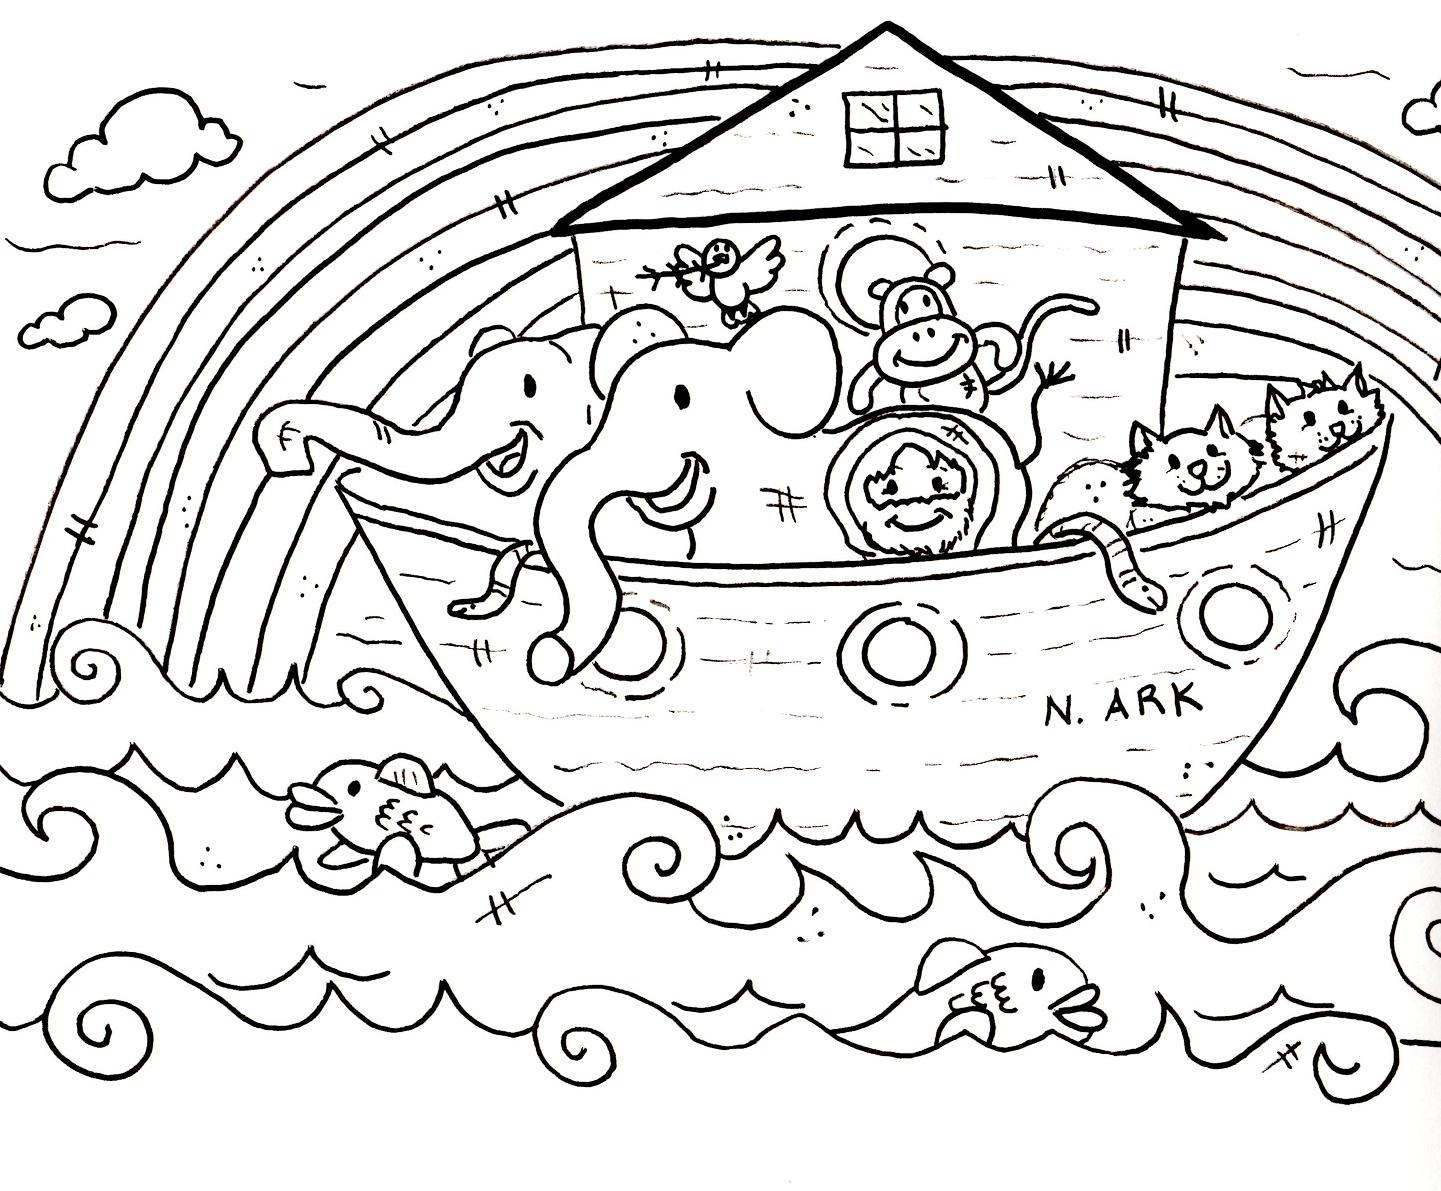 noah coloring page - noahs ark coloring pages sketch templates